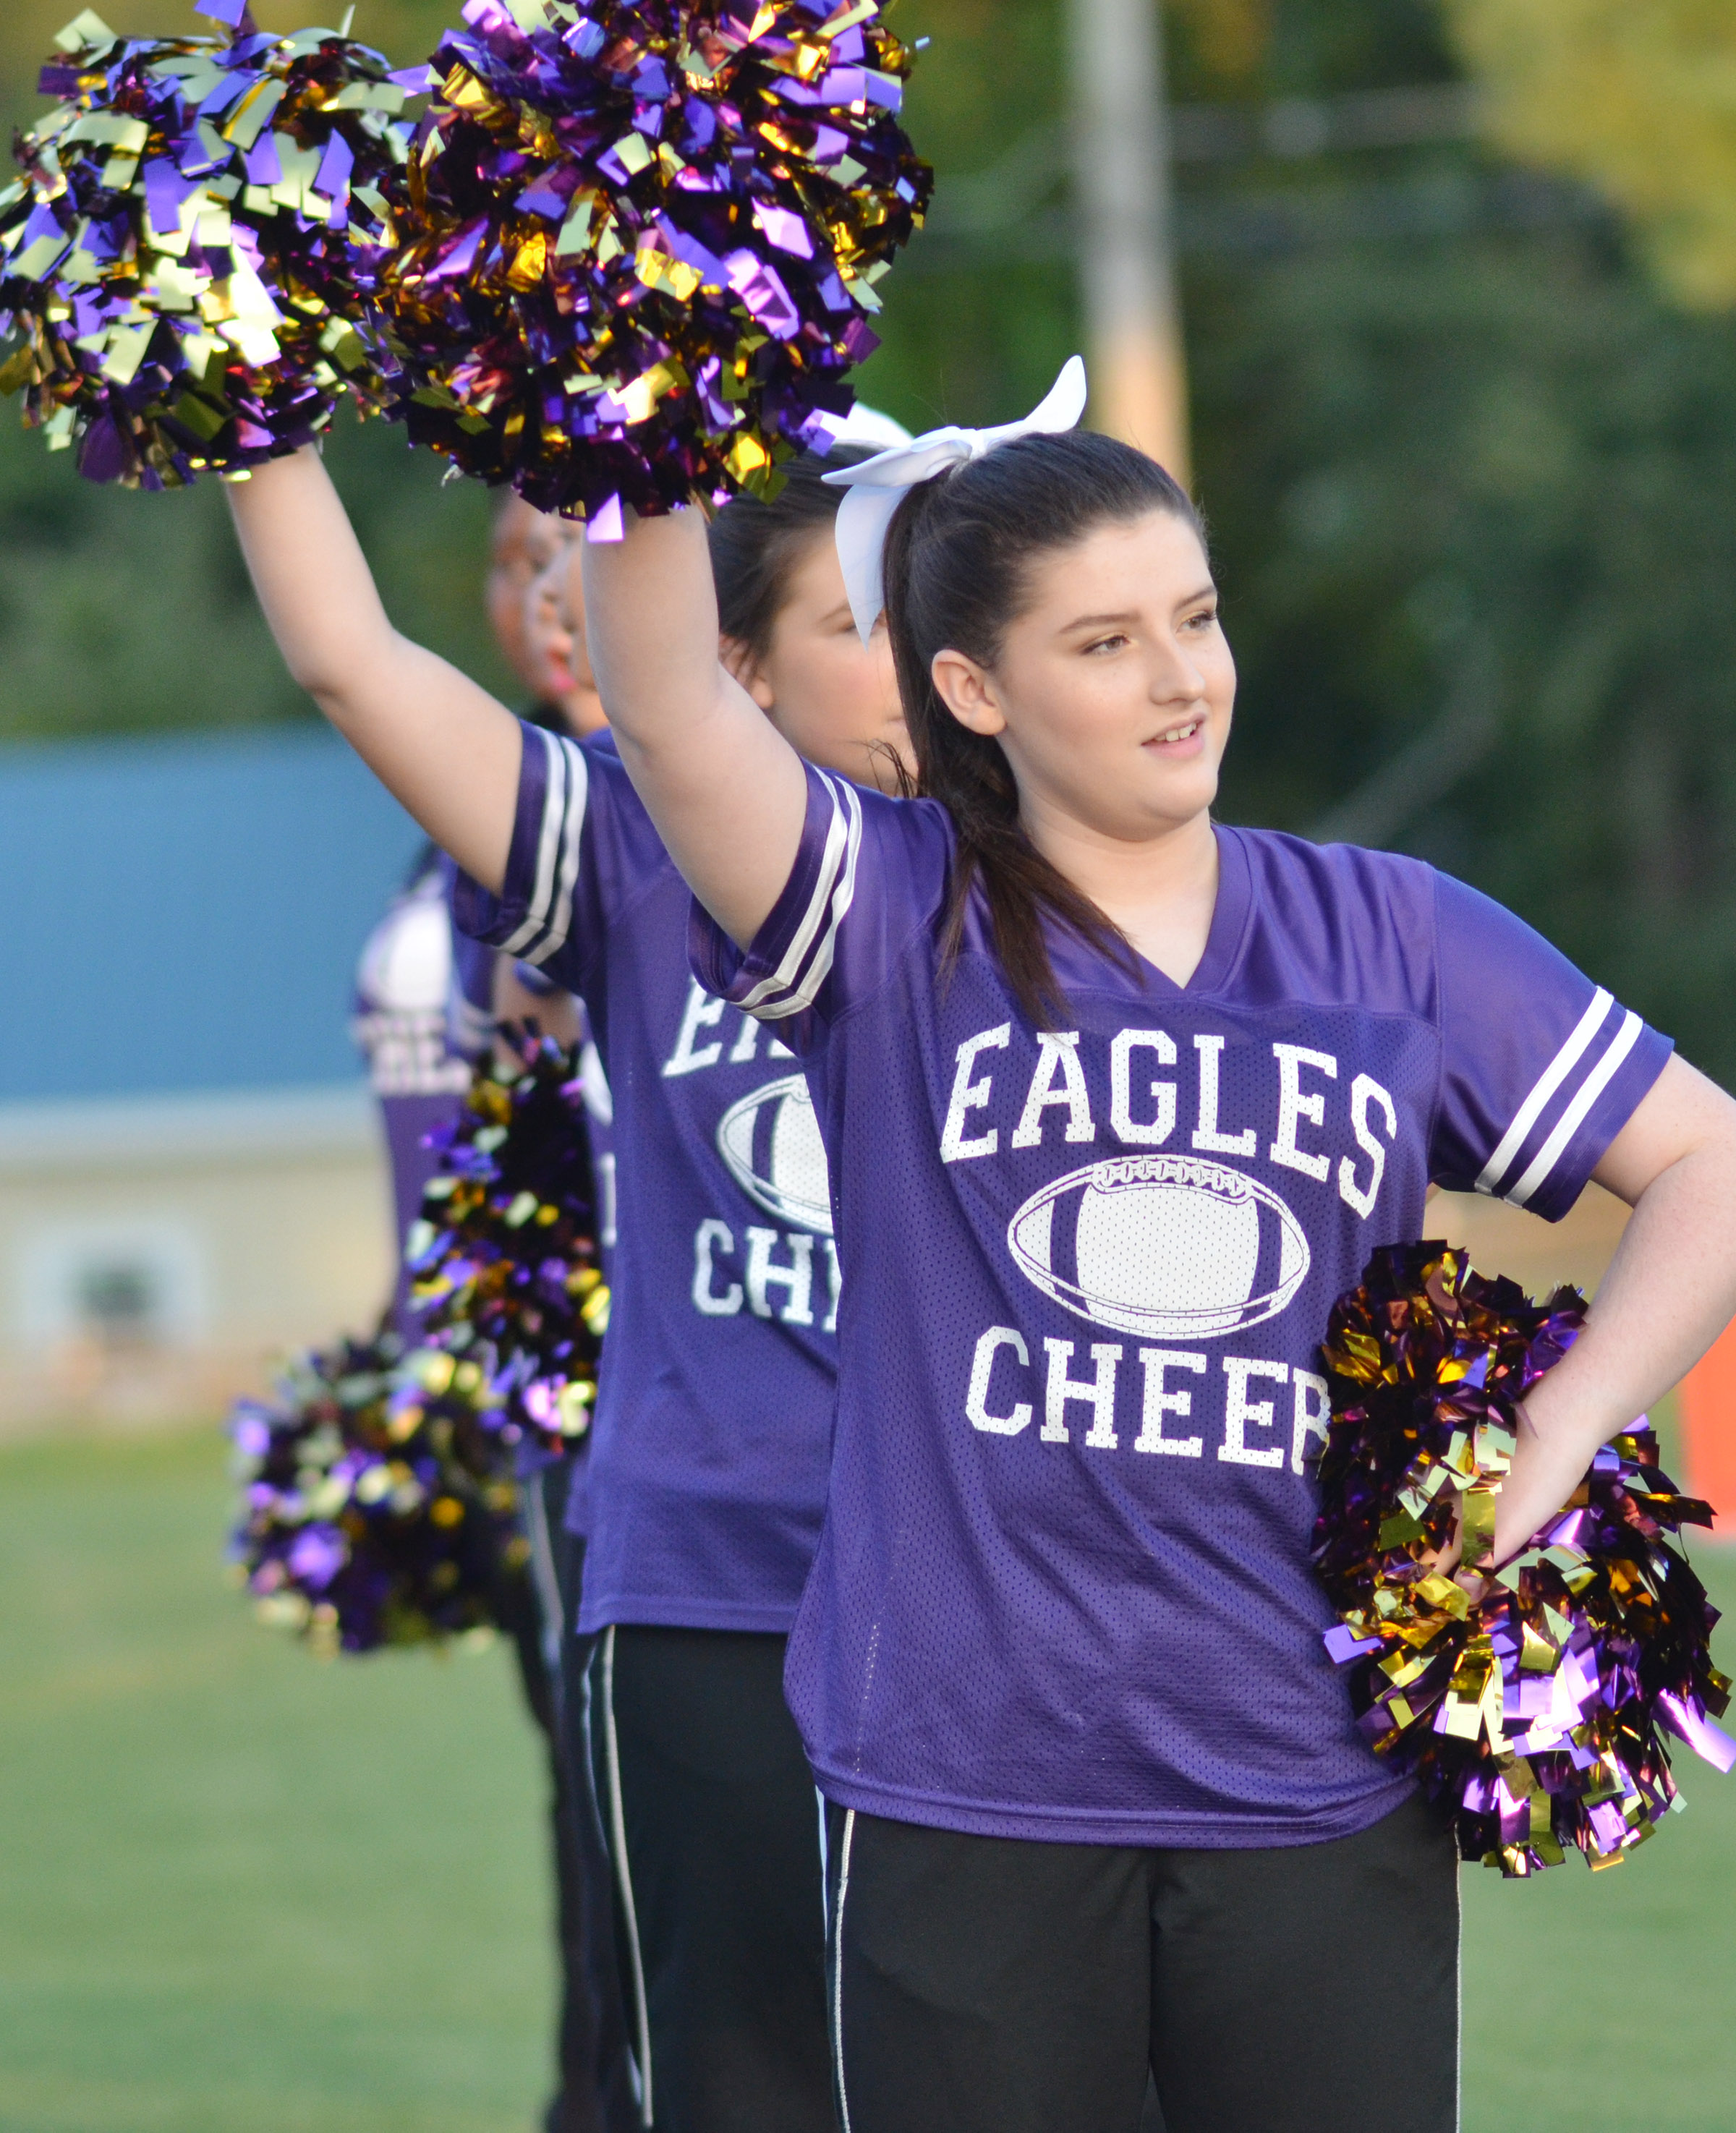 CHS sophomore Alli Wilson cheers for the Eagles.